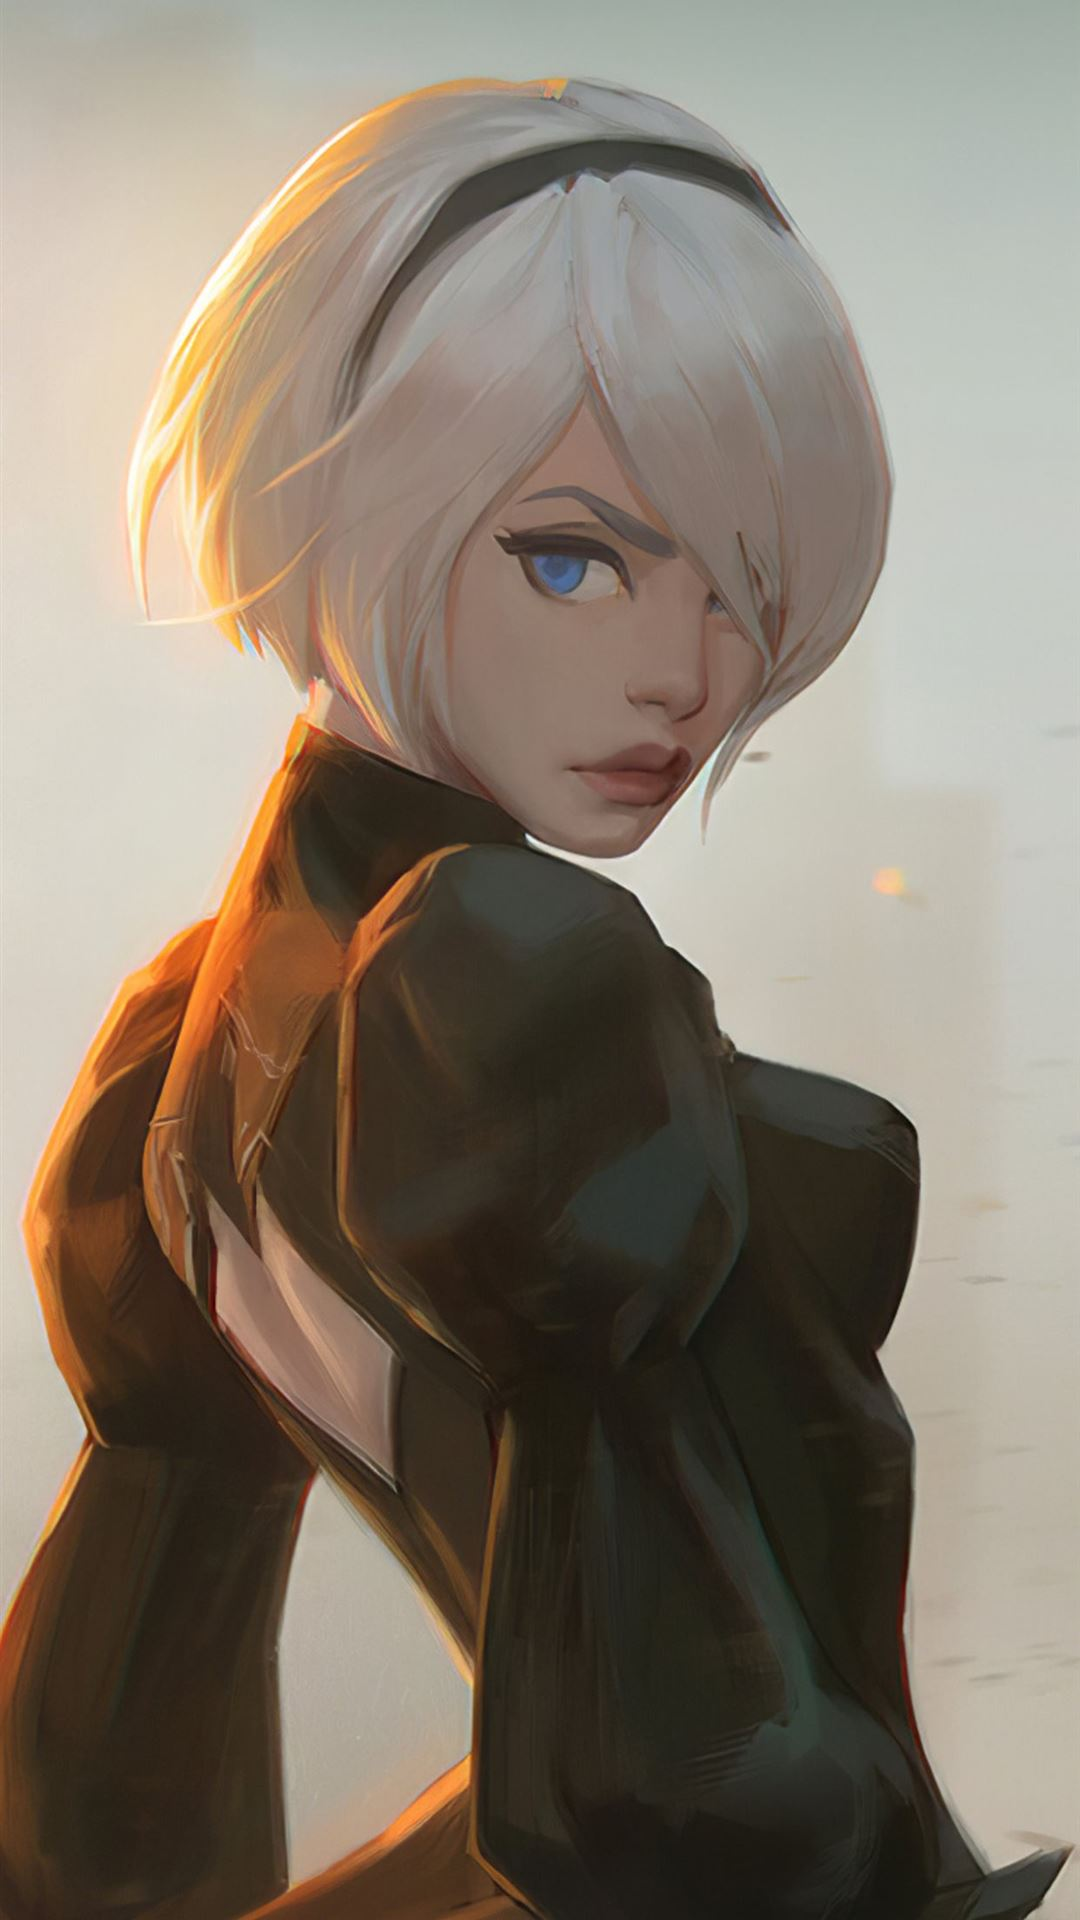 fan art of 2b from nier iPhone SE wallpaper